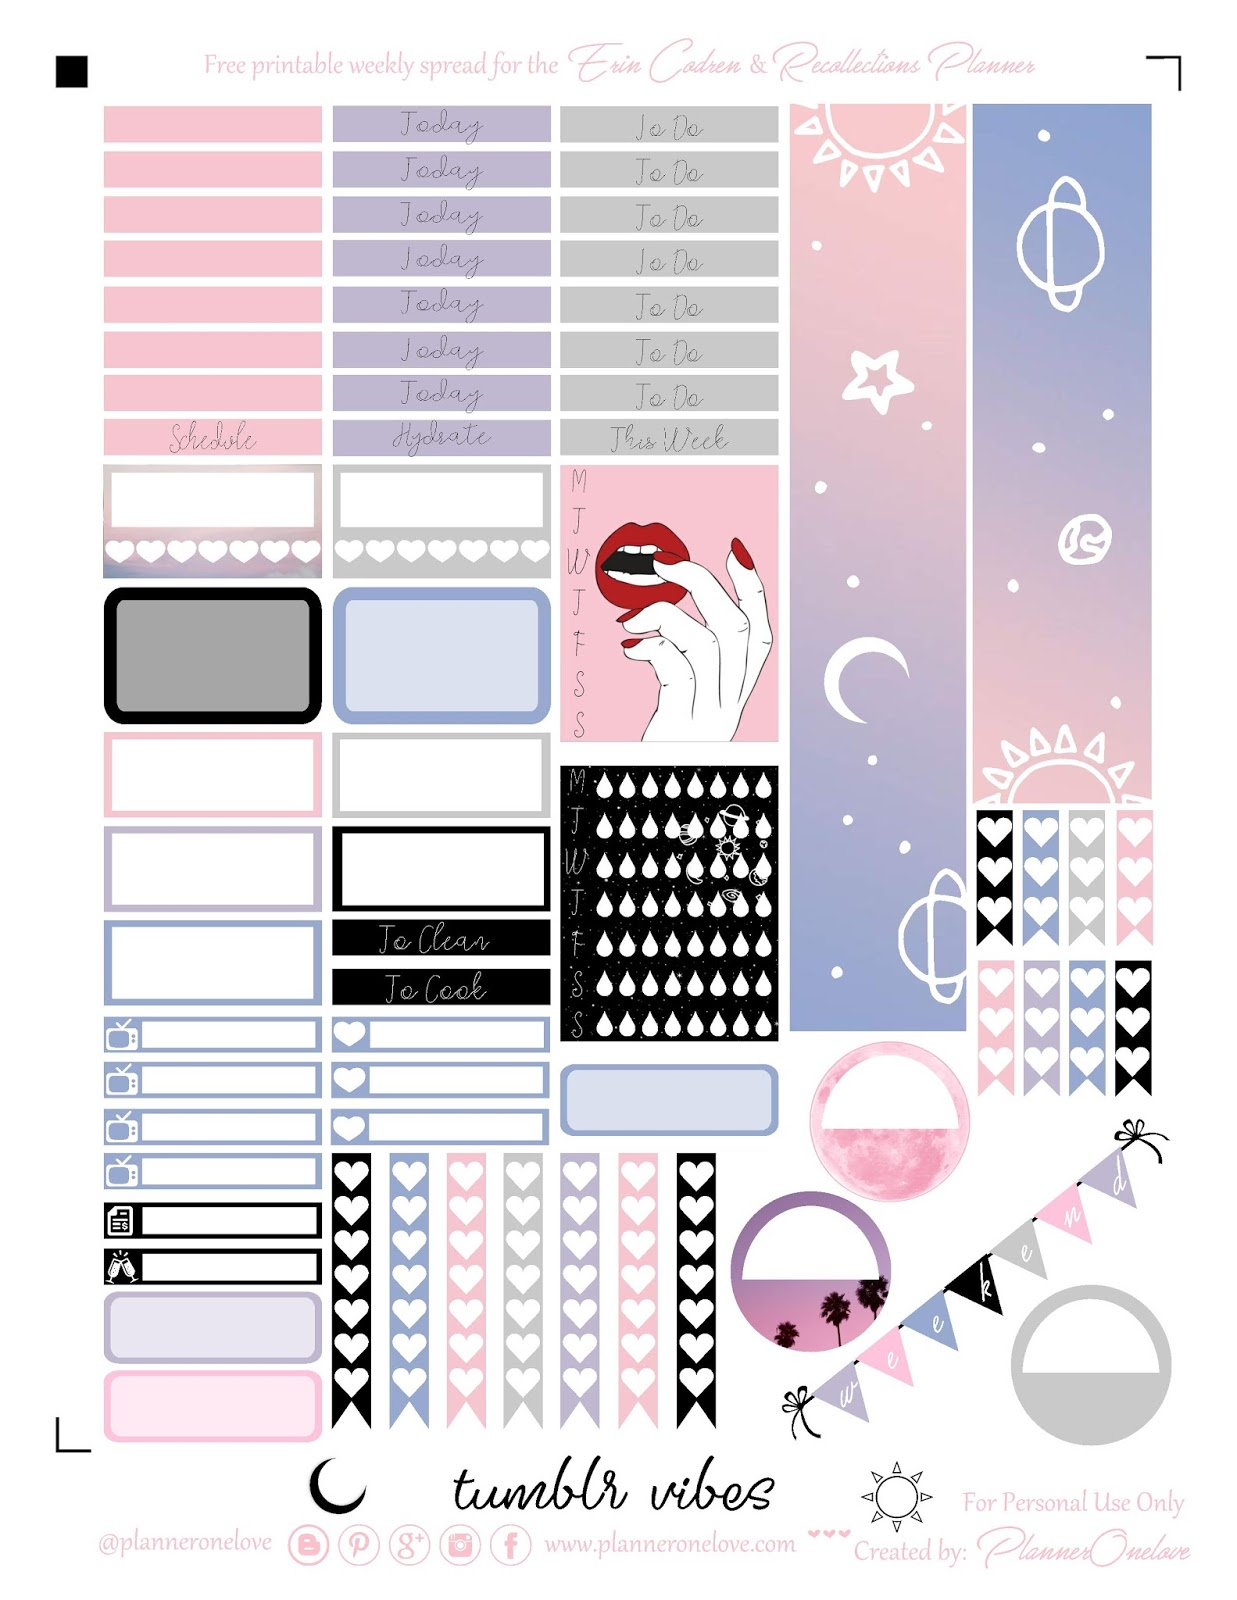 photograph about Planner Tumblr named Outstanding Weekly Planner Printable Tumblr Picture - Desain